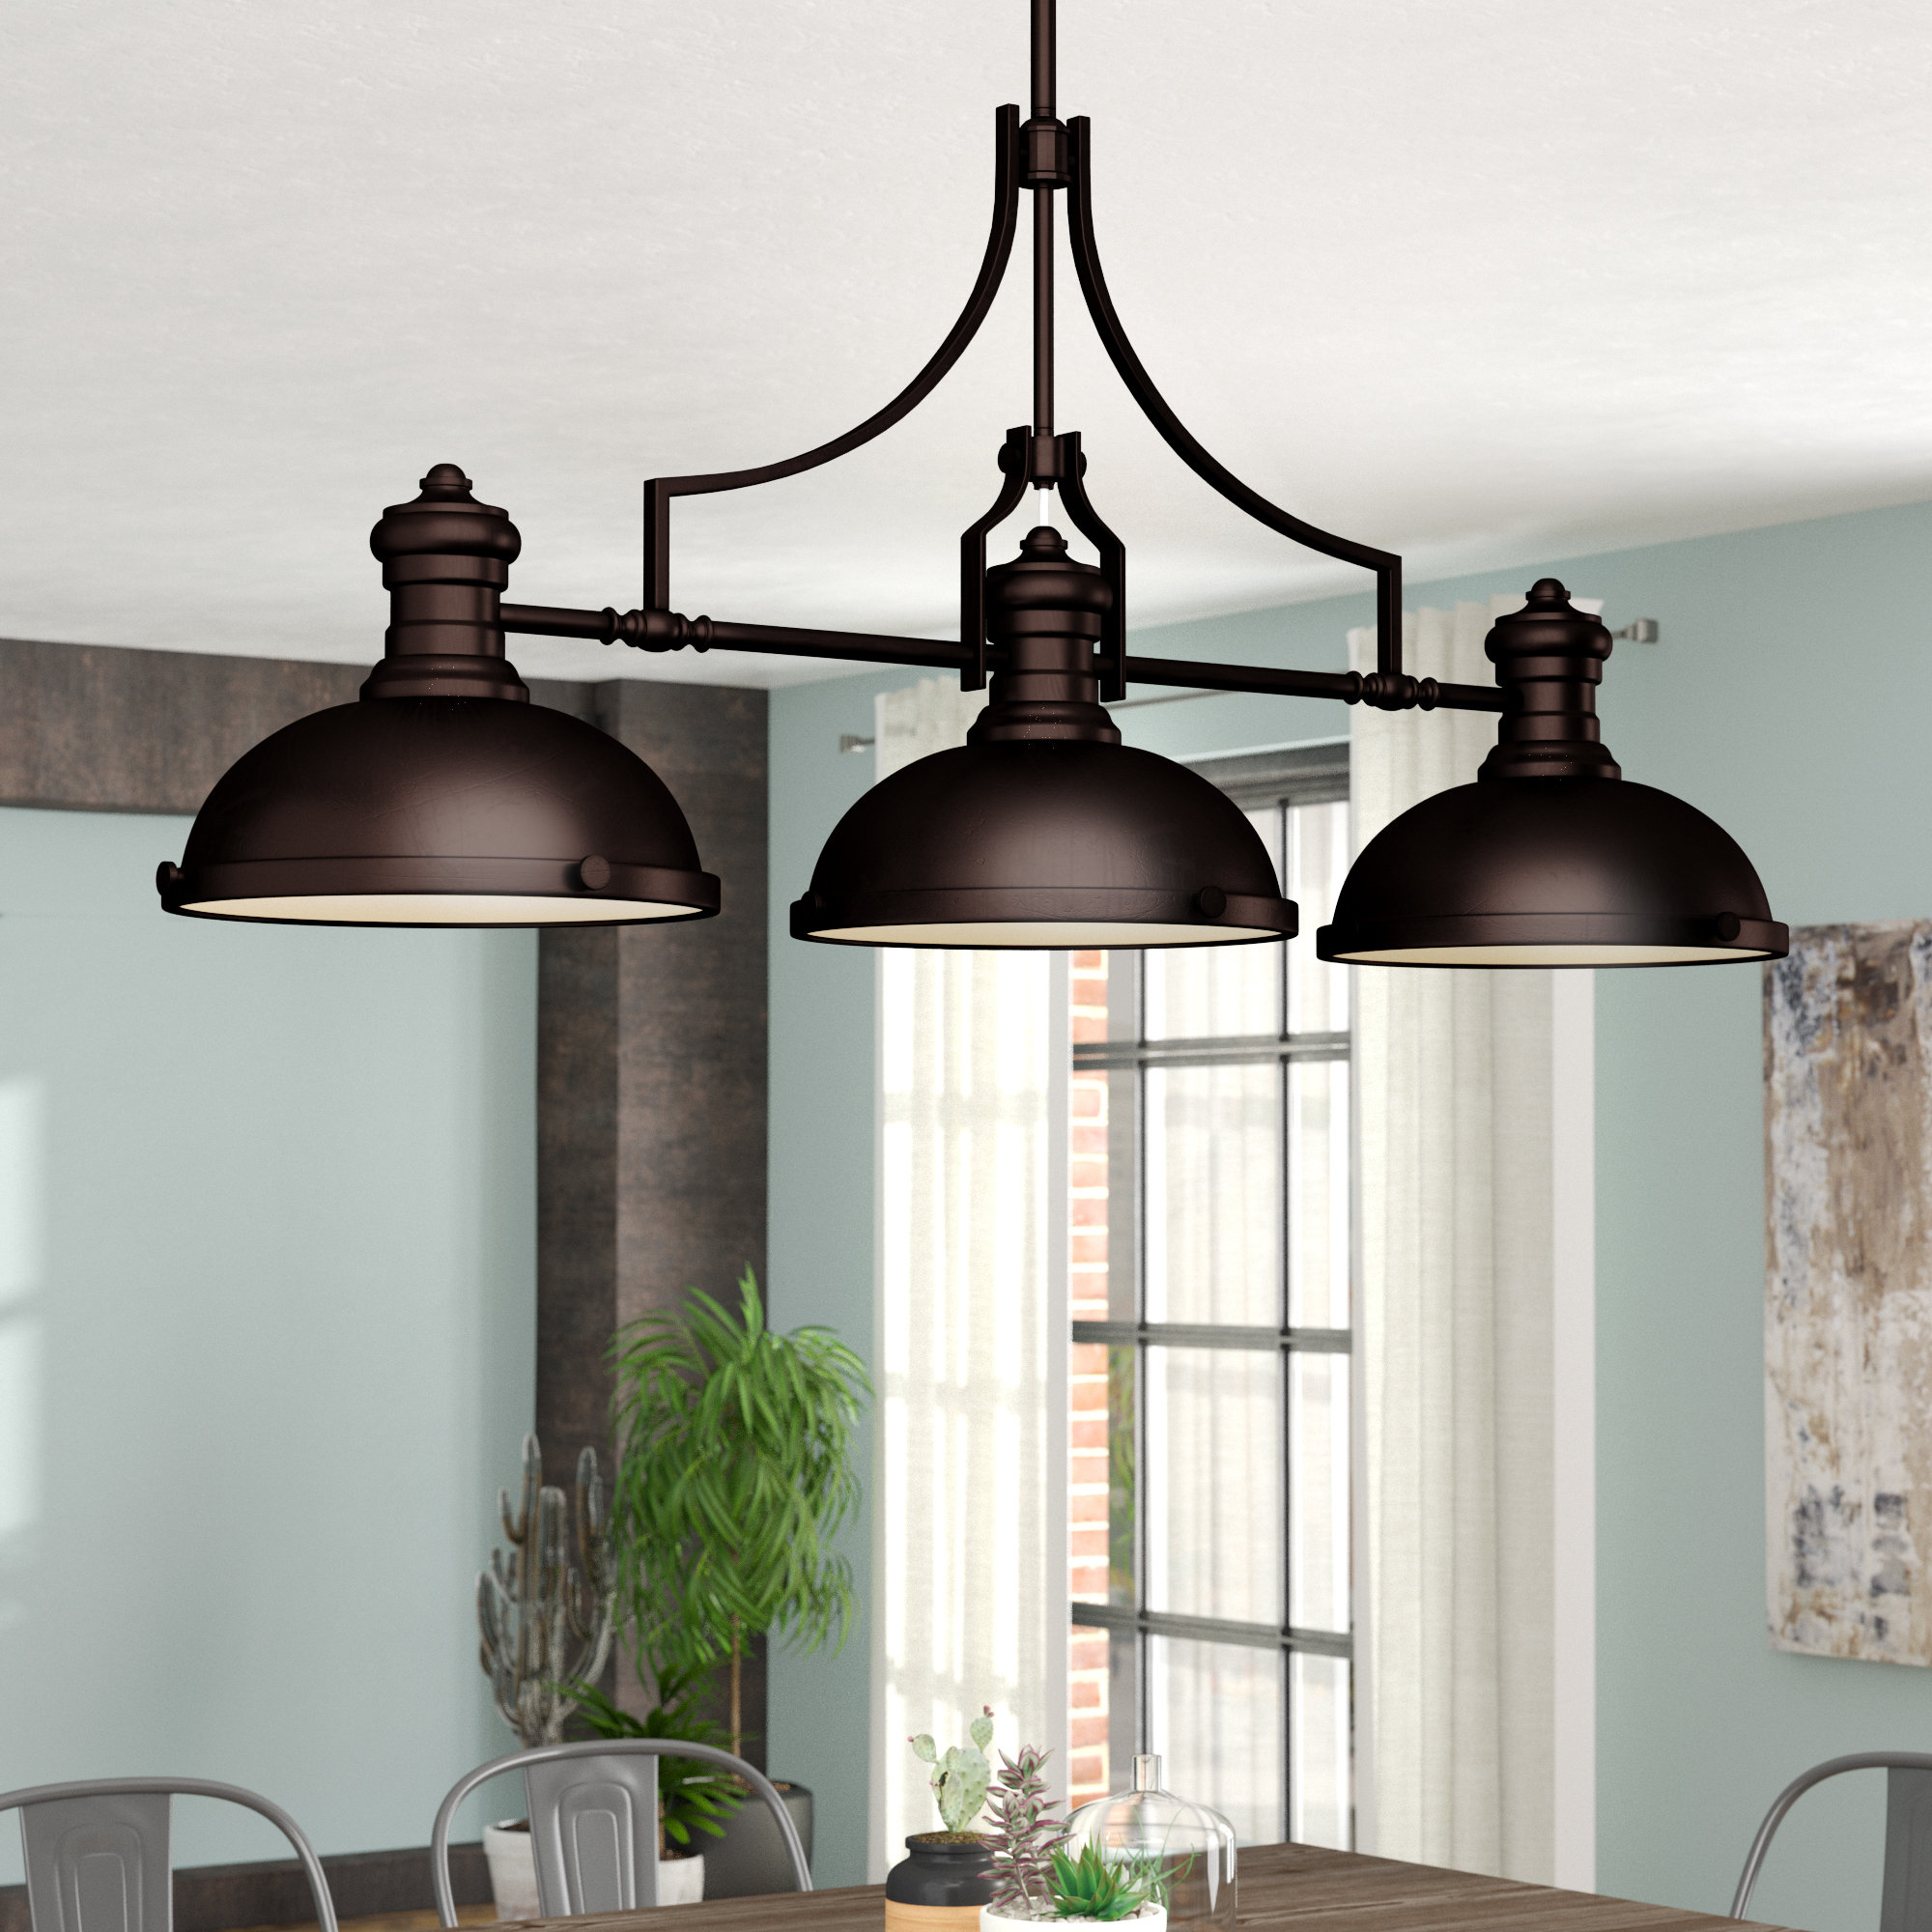 Widely Used Ariel 3 Light Kitchen Island Dome Pendants Intended For Trent Austin Design Fredela 3 Light Kitchen Island Pendant (View 23 of 25)